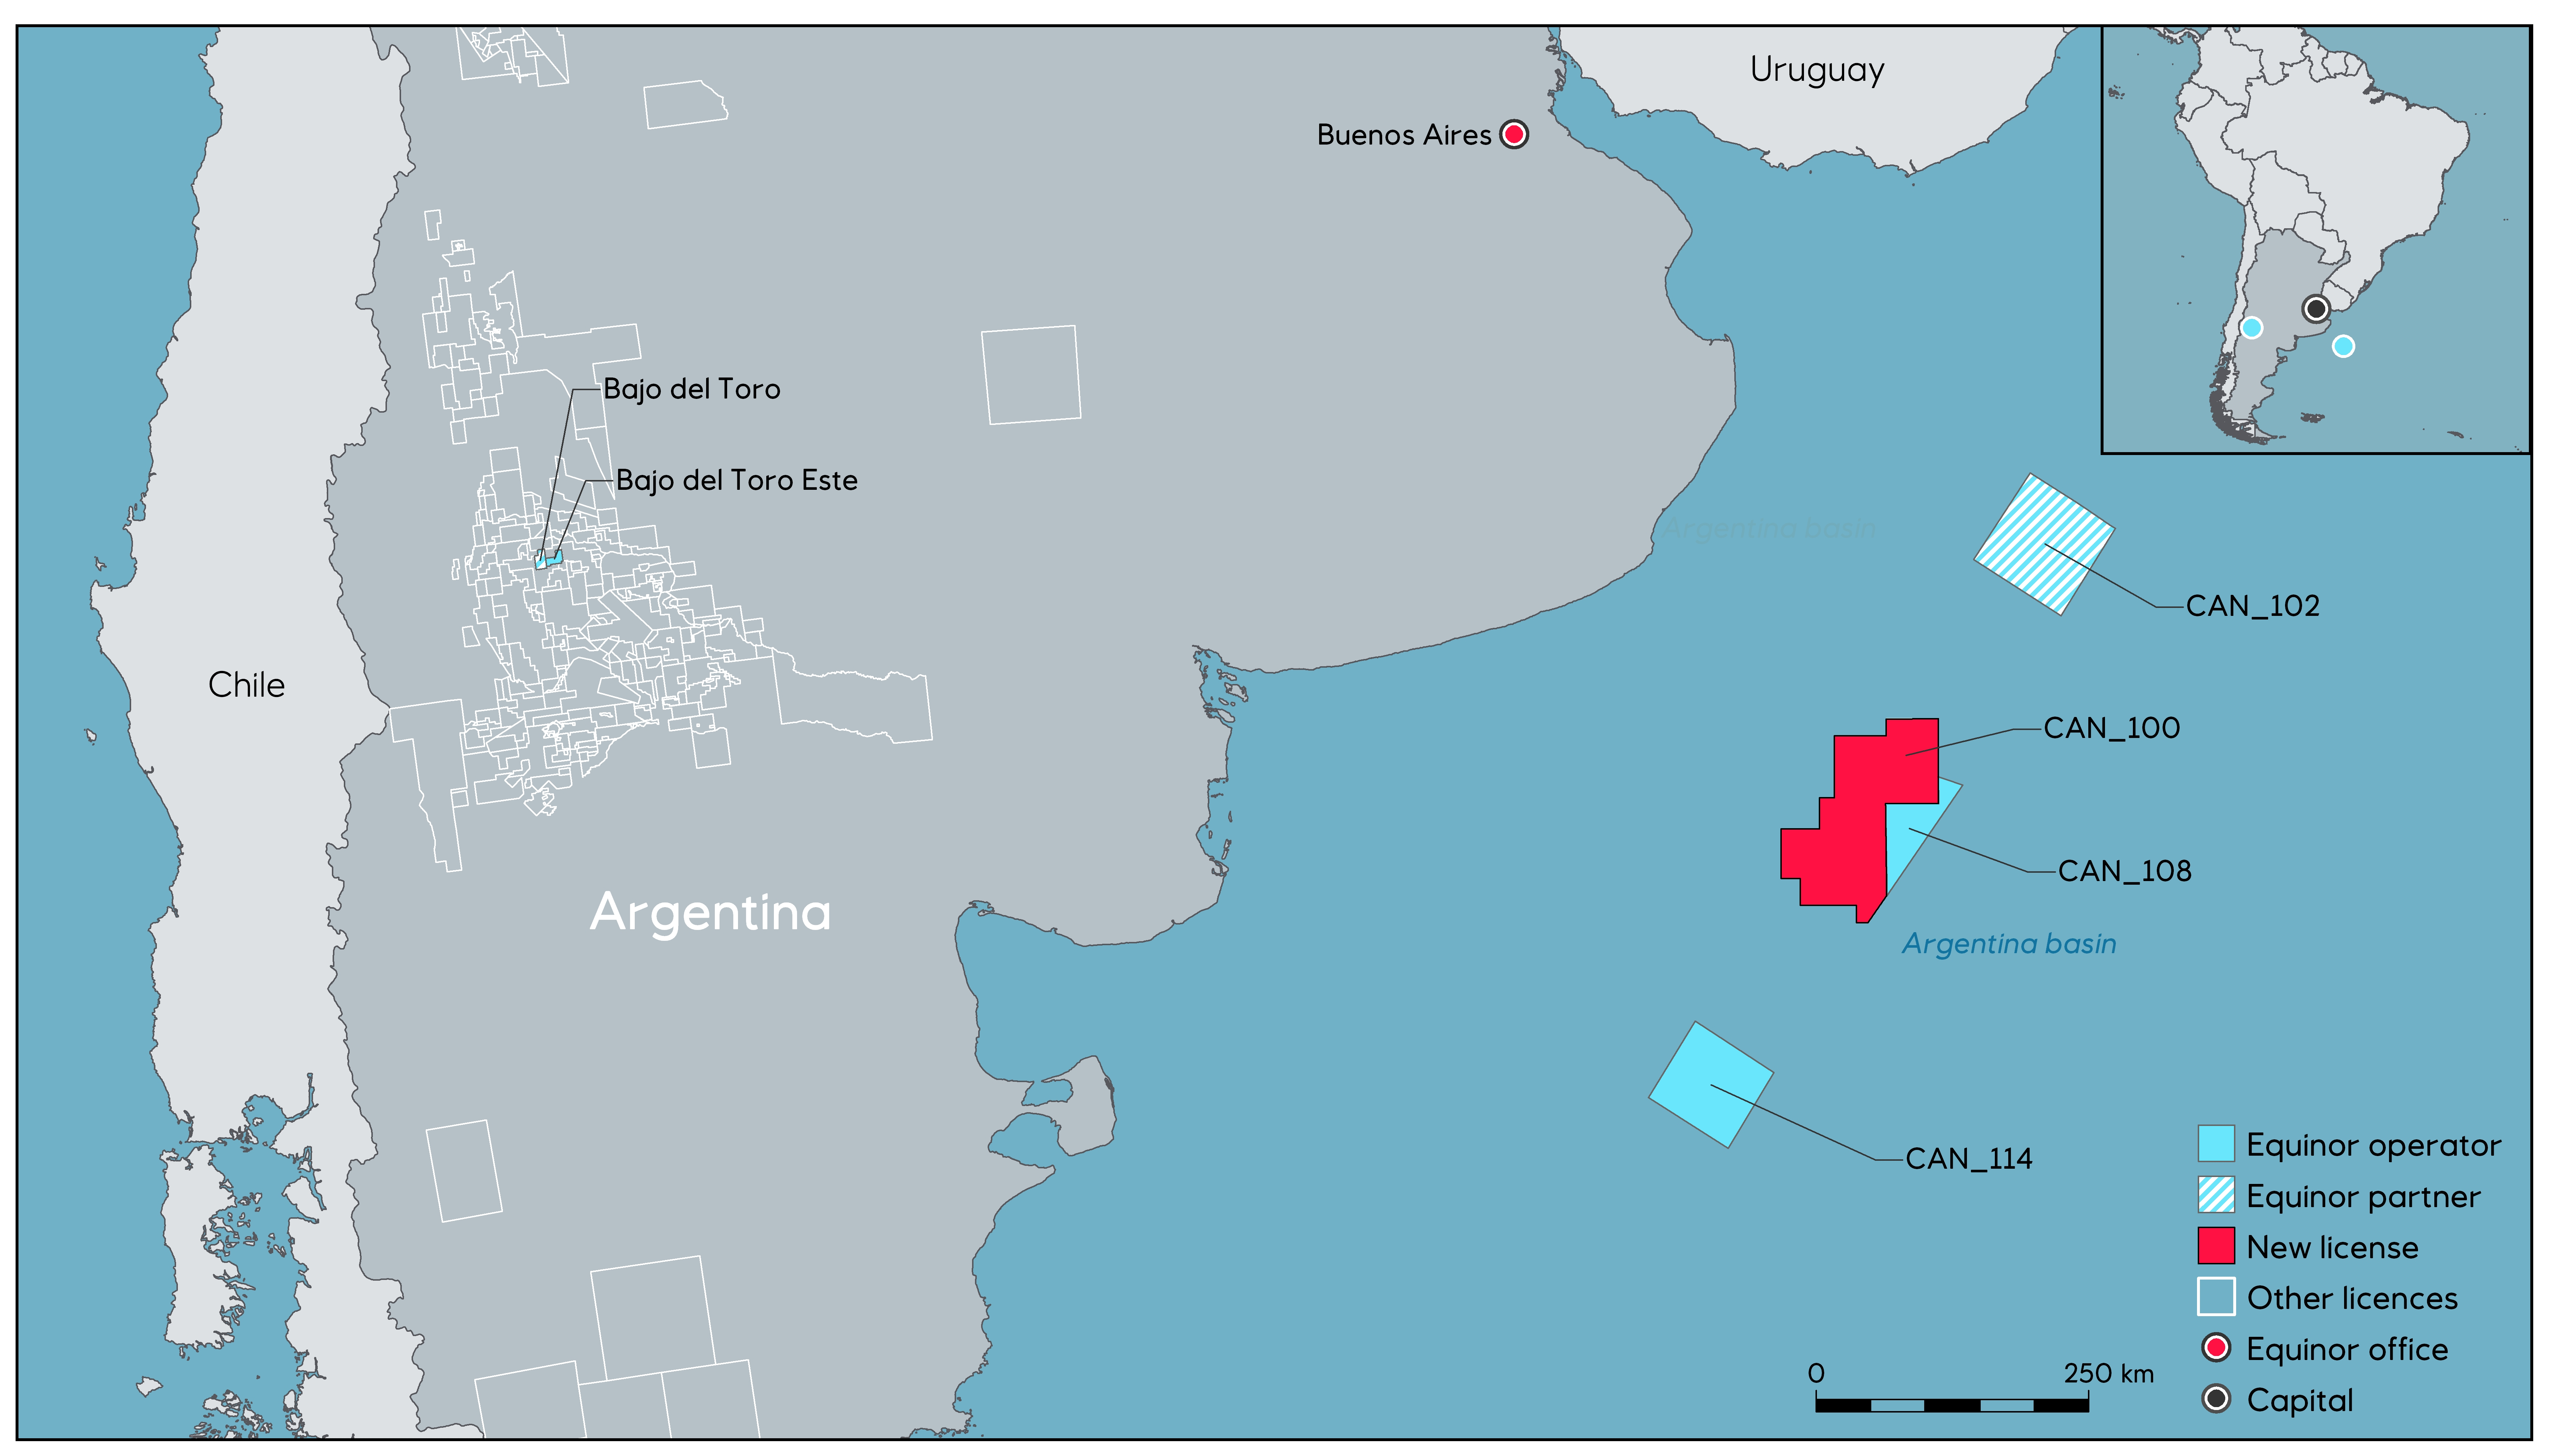 Map of the CAN 100 block in the Argentinian Basin (Source: Equinor ASA)